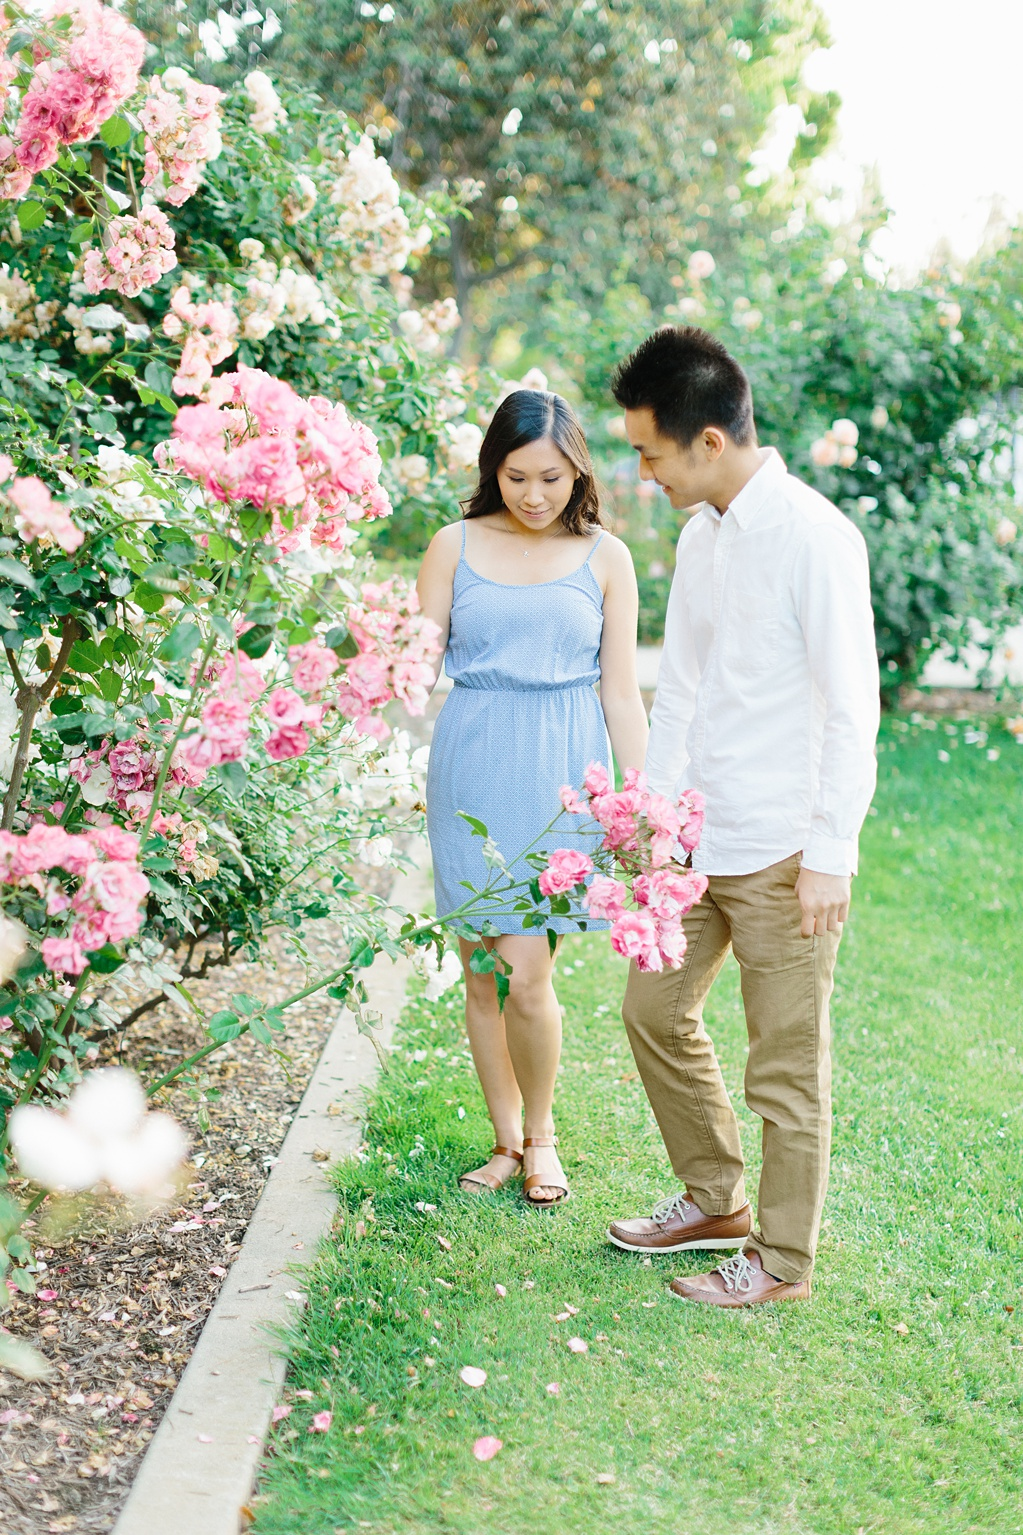 Elegant rose garden engagement shoot at Lacy Park in Pasadena by LA wedding photographer-Madison Ellis Photography (27)